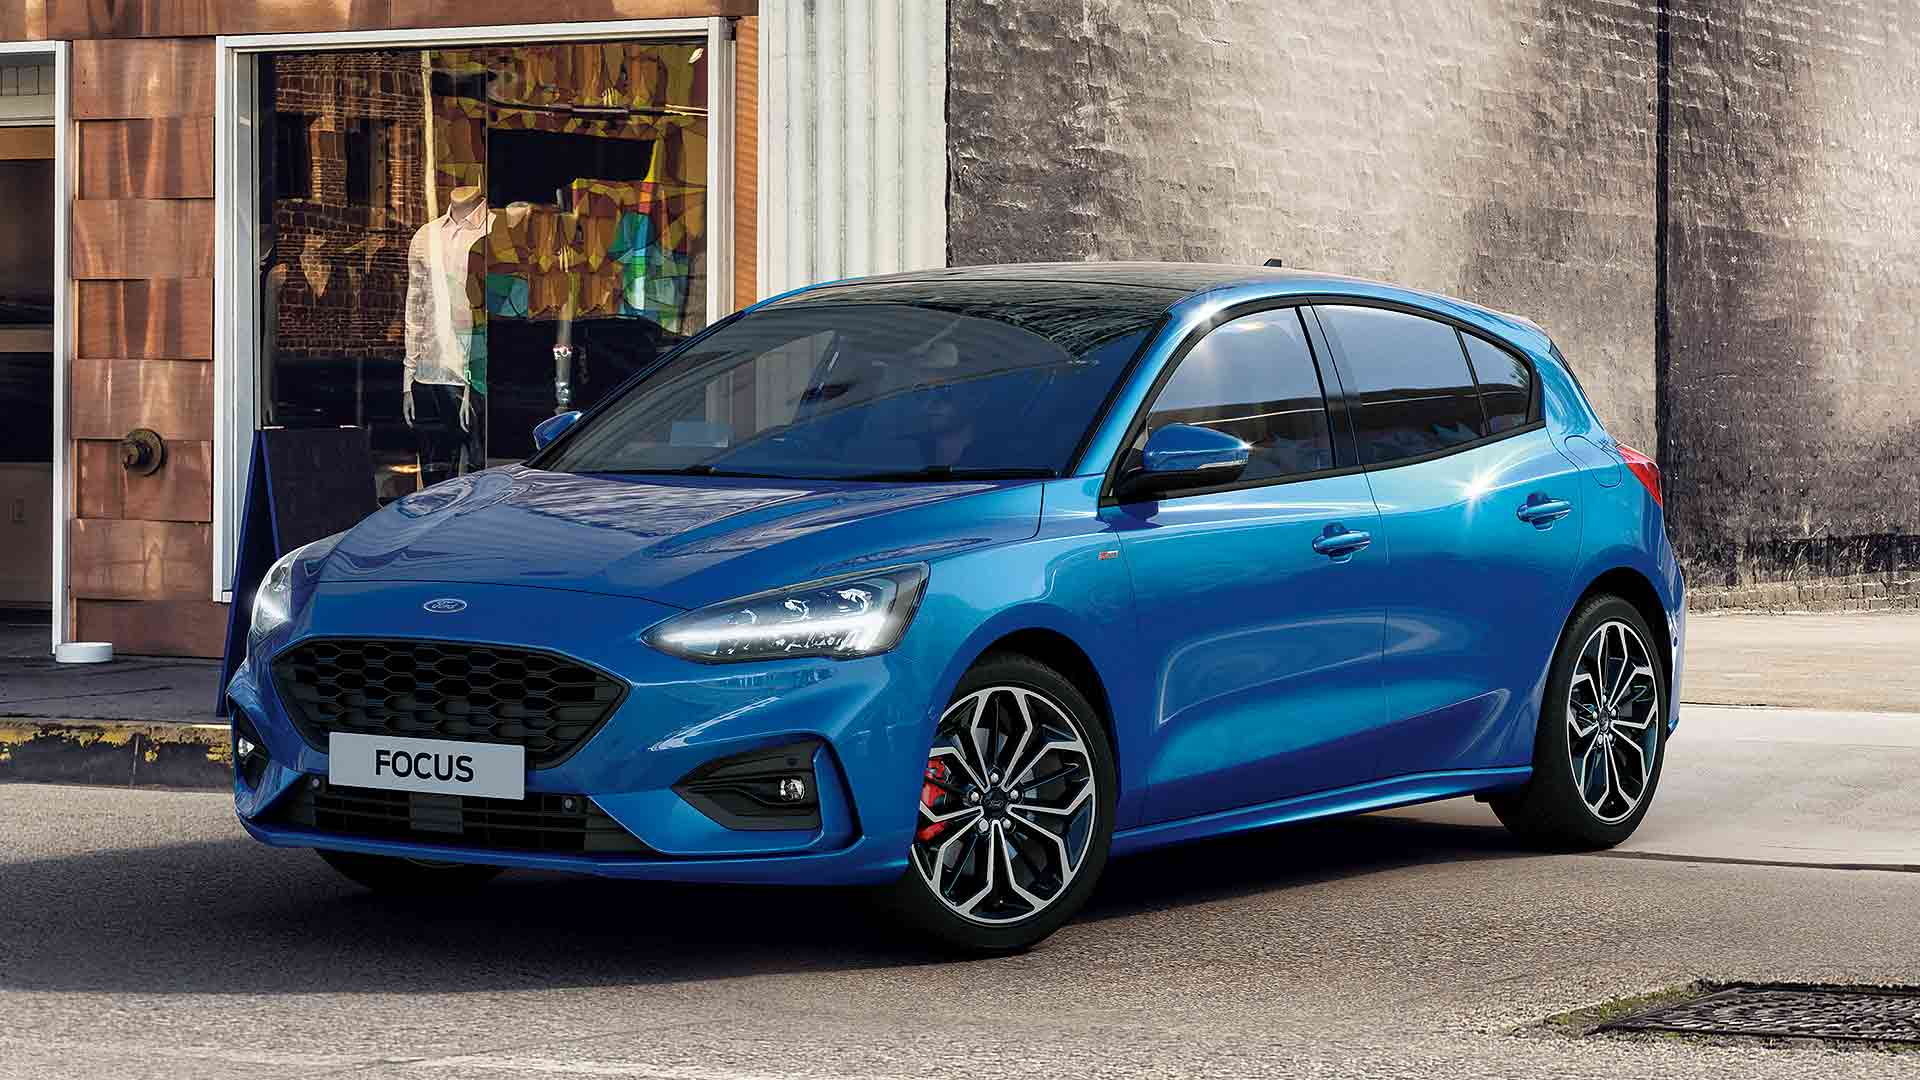 2020 Pull out the Ford Focus Ecoboost Hybrid in blue from a parking lot